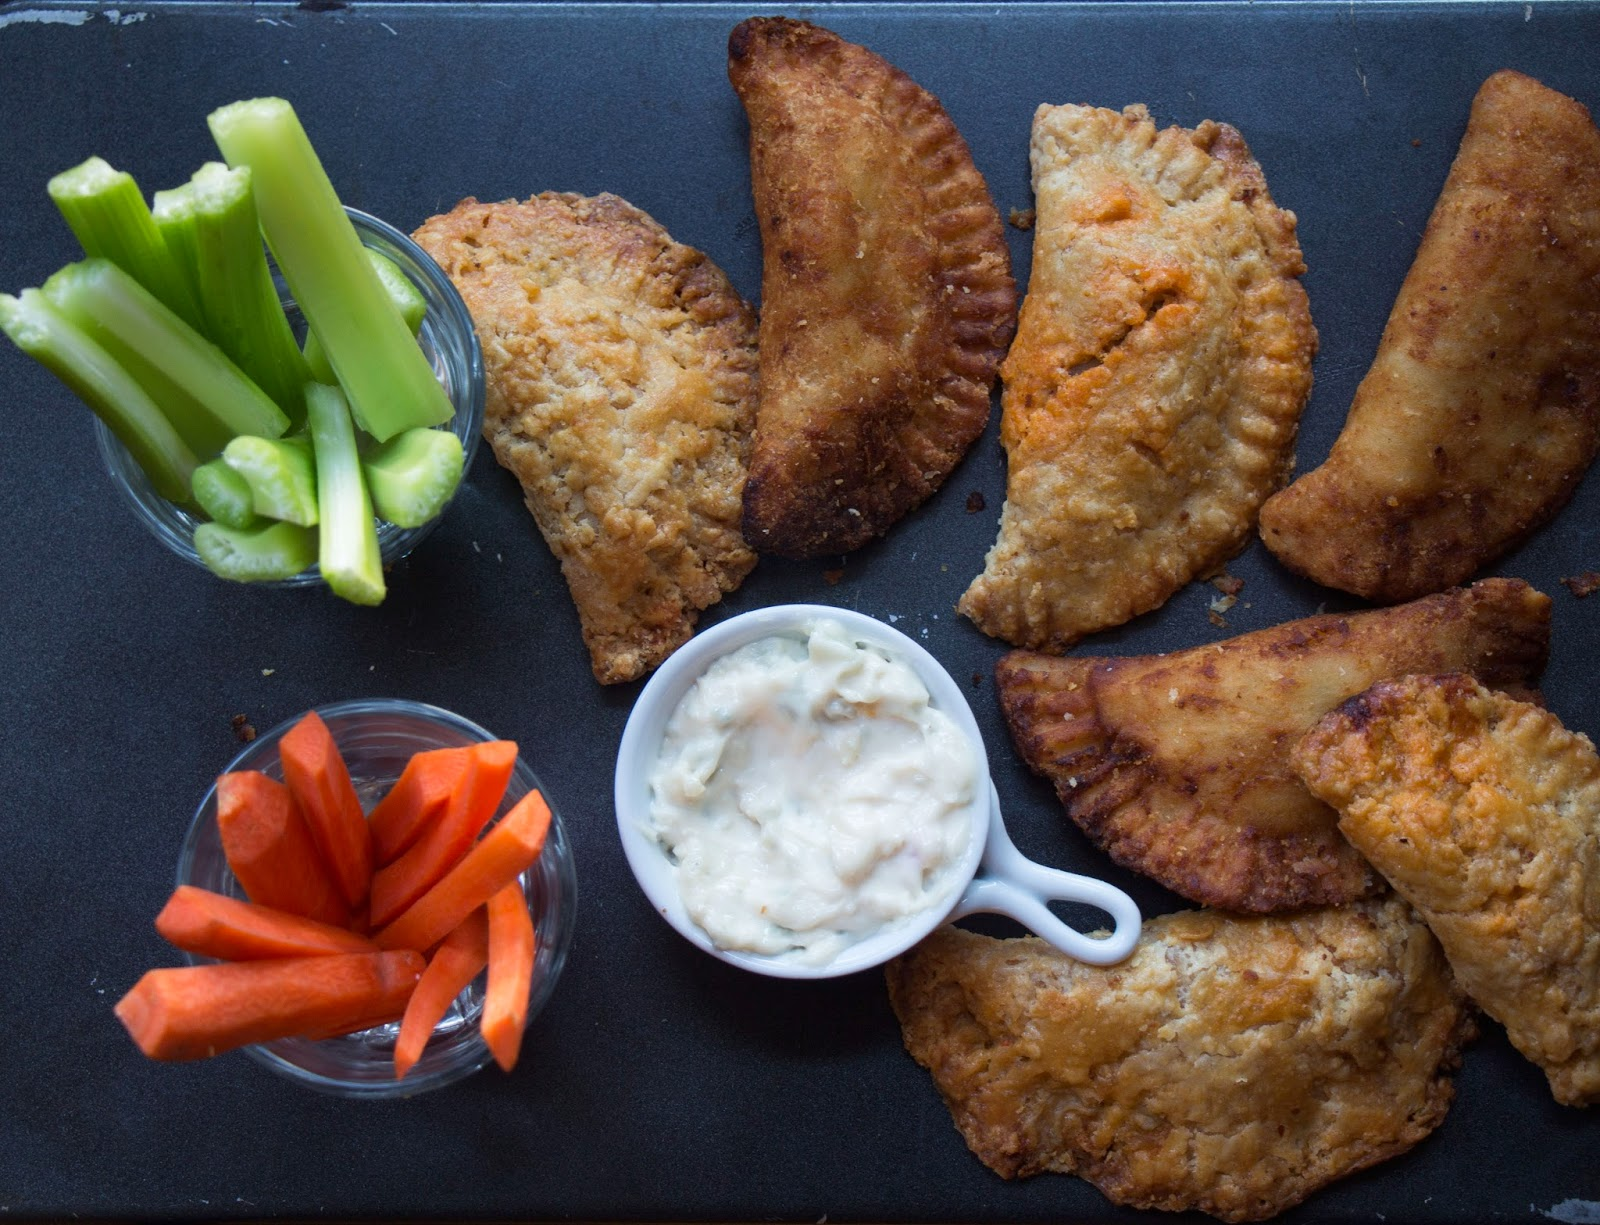 Buffalo Chicken Fried Pies with Celery and Carrot Sticks and Ranch Dressing